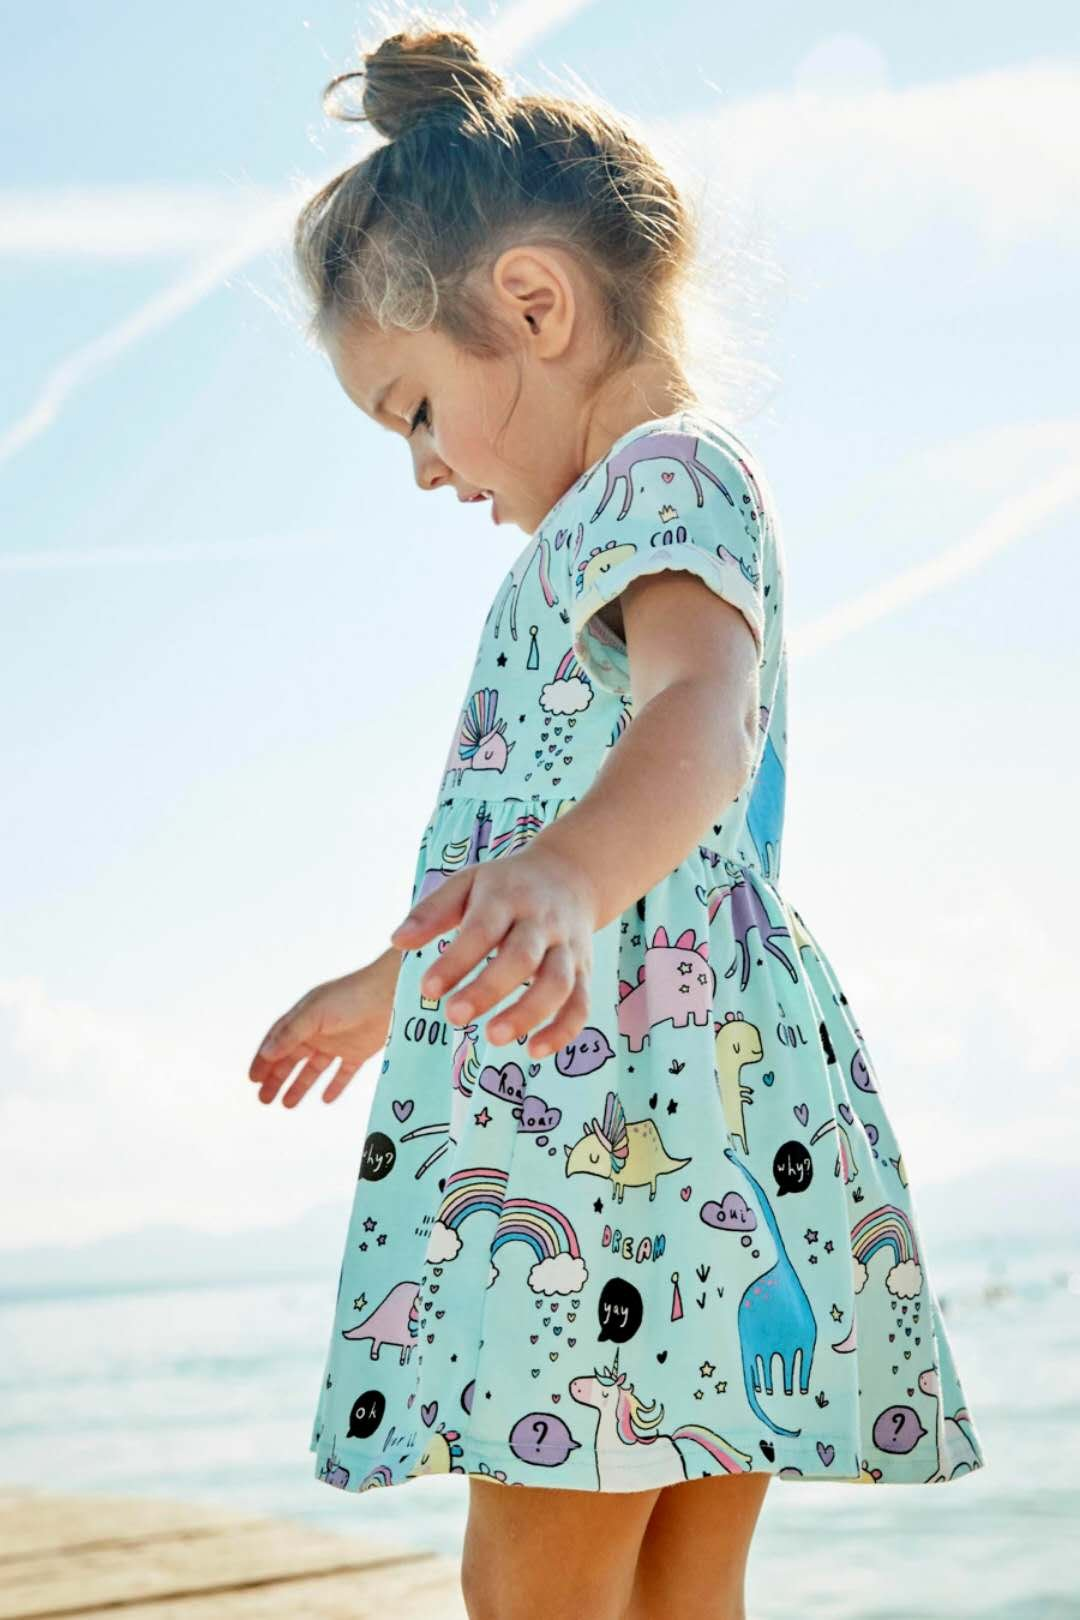 Little Girls Dinosaur Tunic Short Sleeve Summer Casual Dress size 2t(1t-2t) by Bumeex (Image #3)